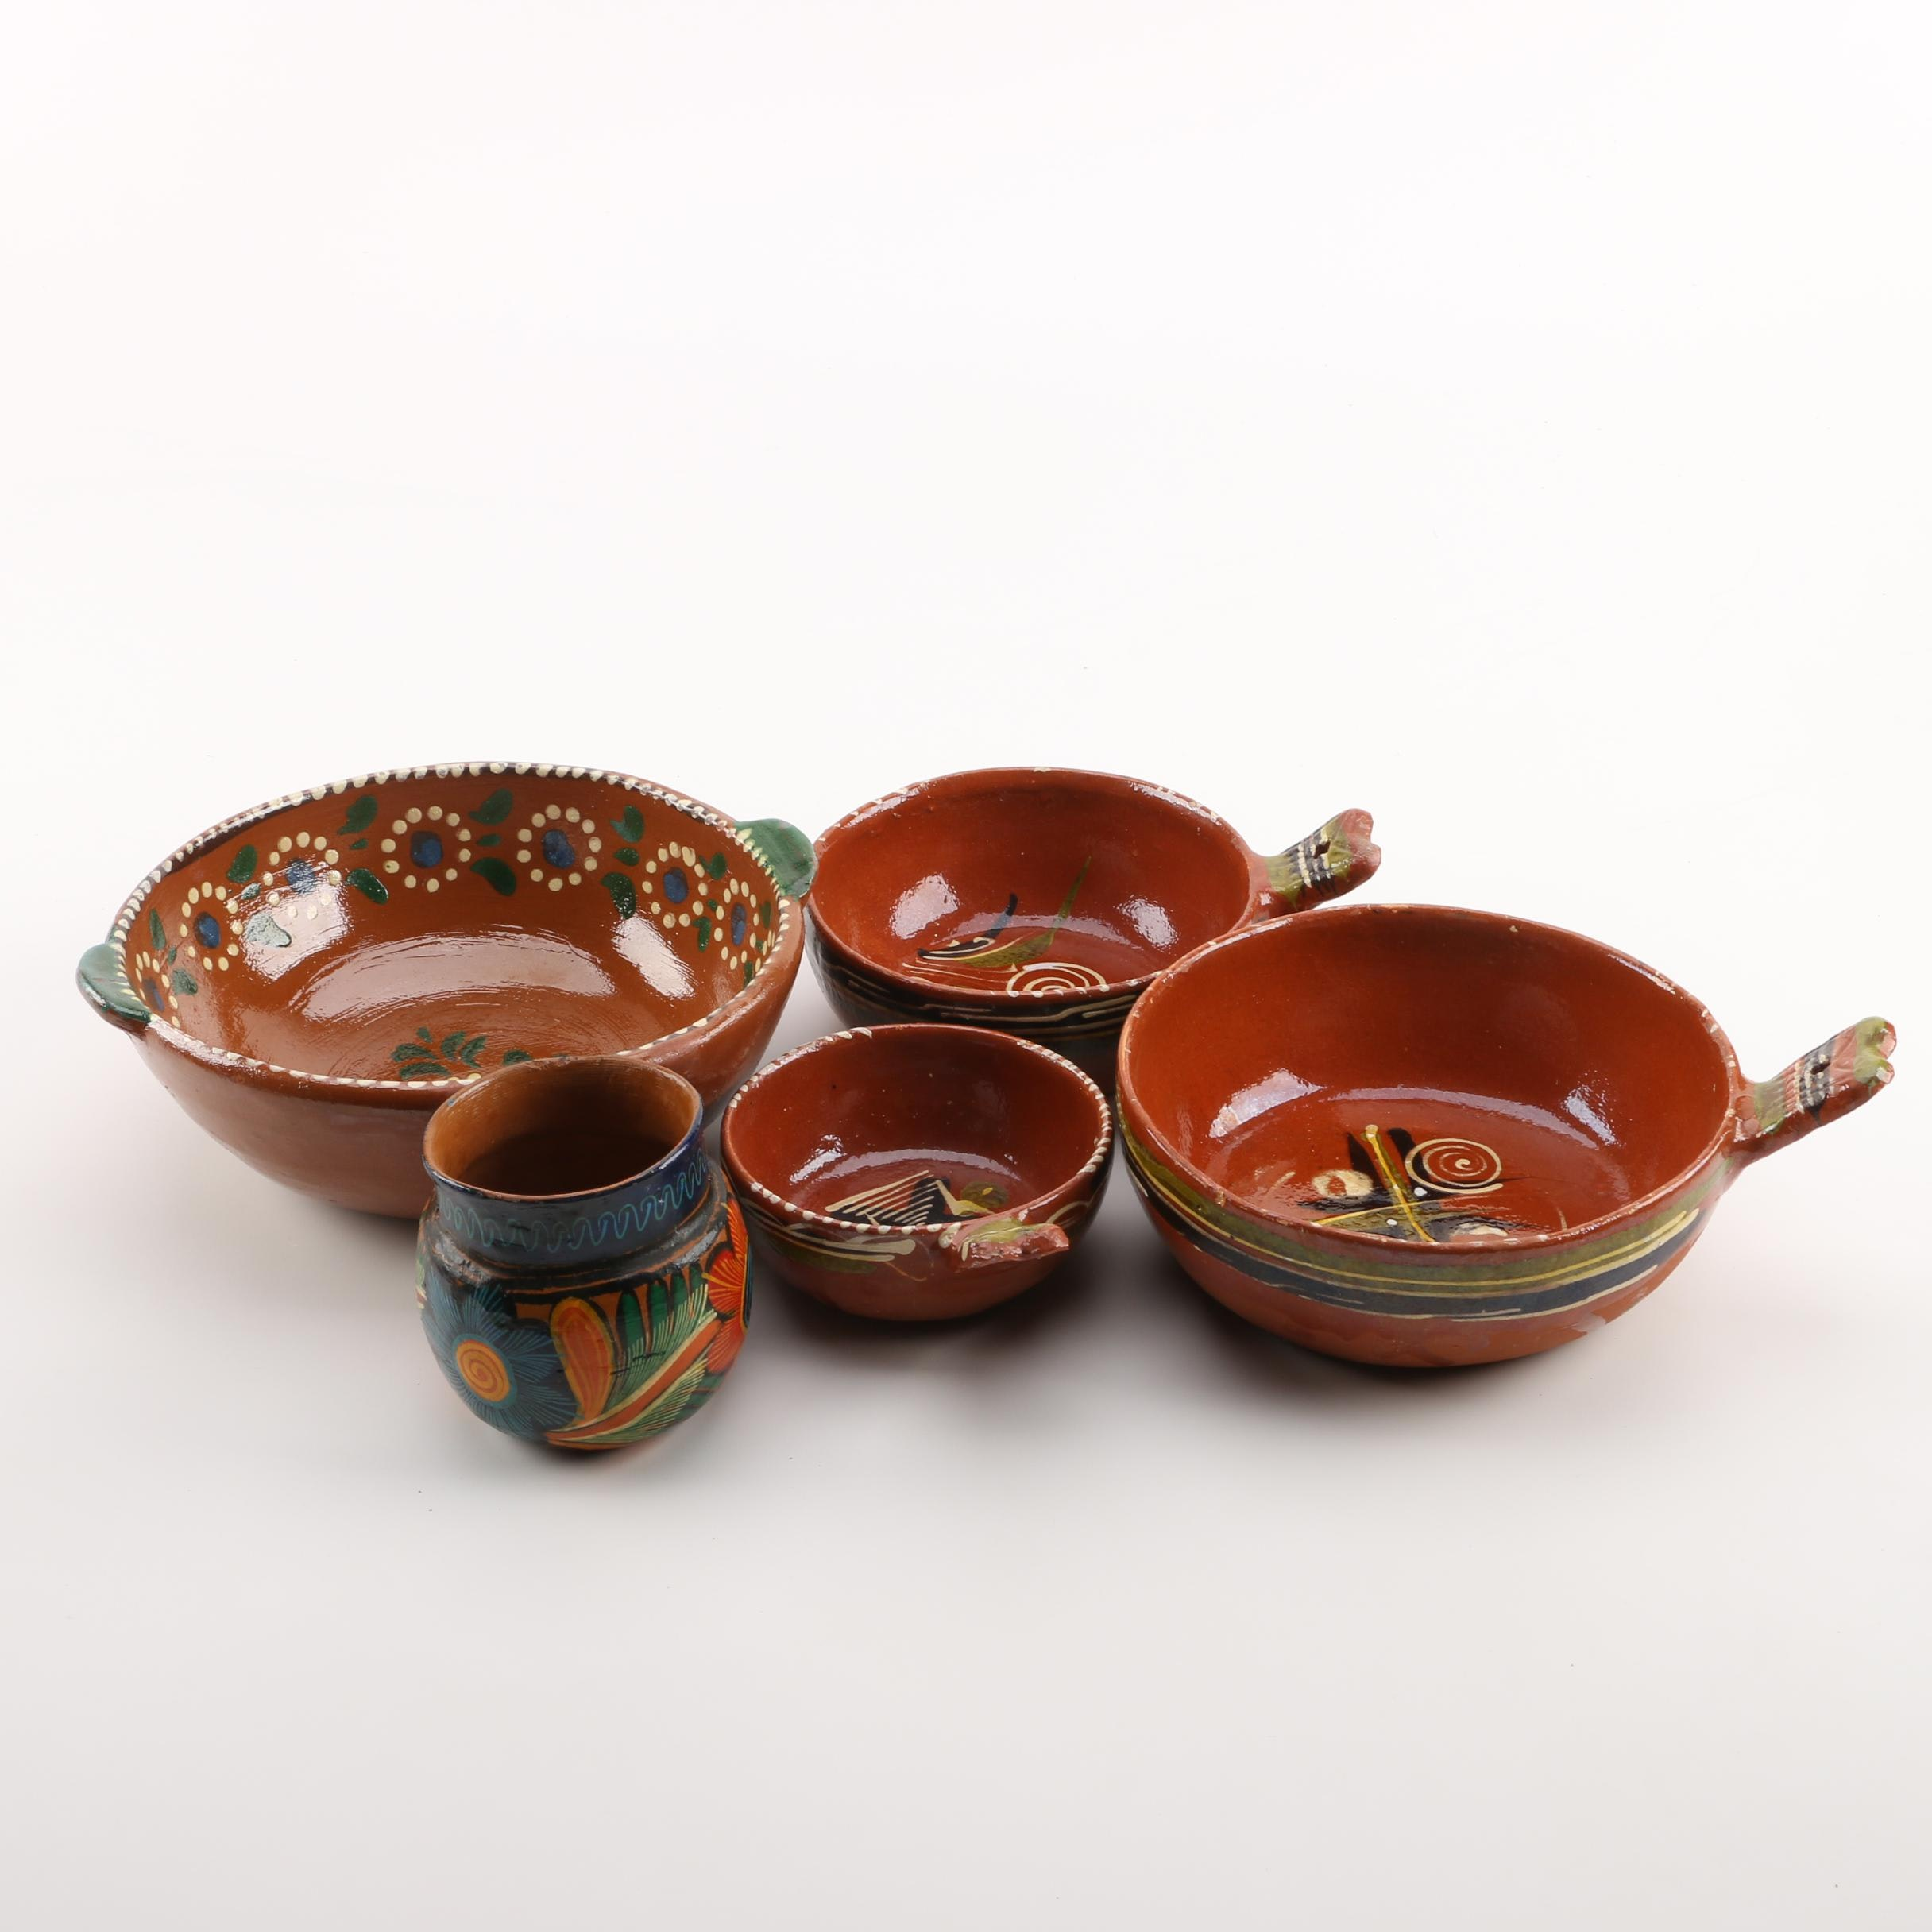 Vintage Mexican Terracotta Bowls